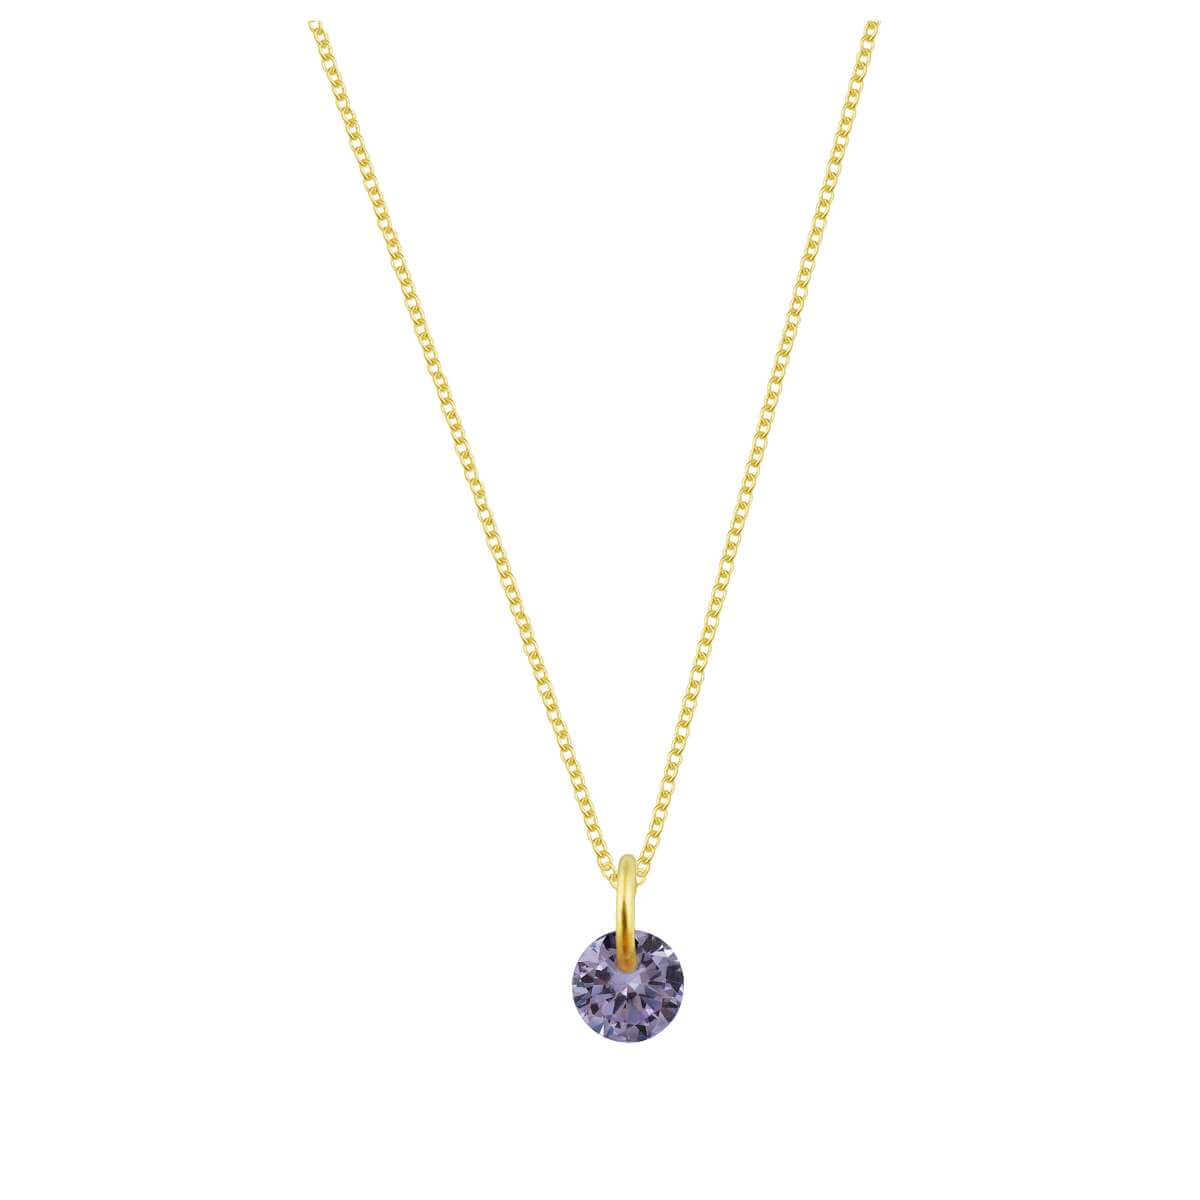 Gold Plated Sterling Silver & 4mm Alexandrite CZ Necklace - 16 - 22 Inches